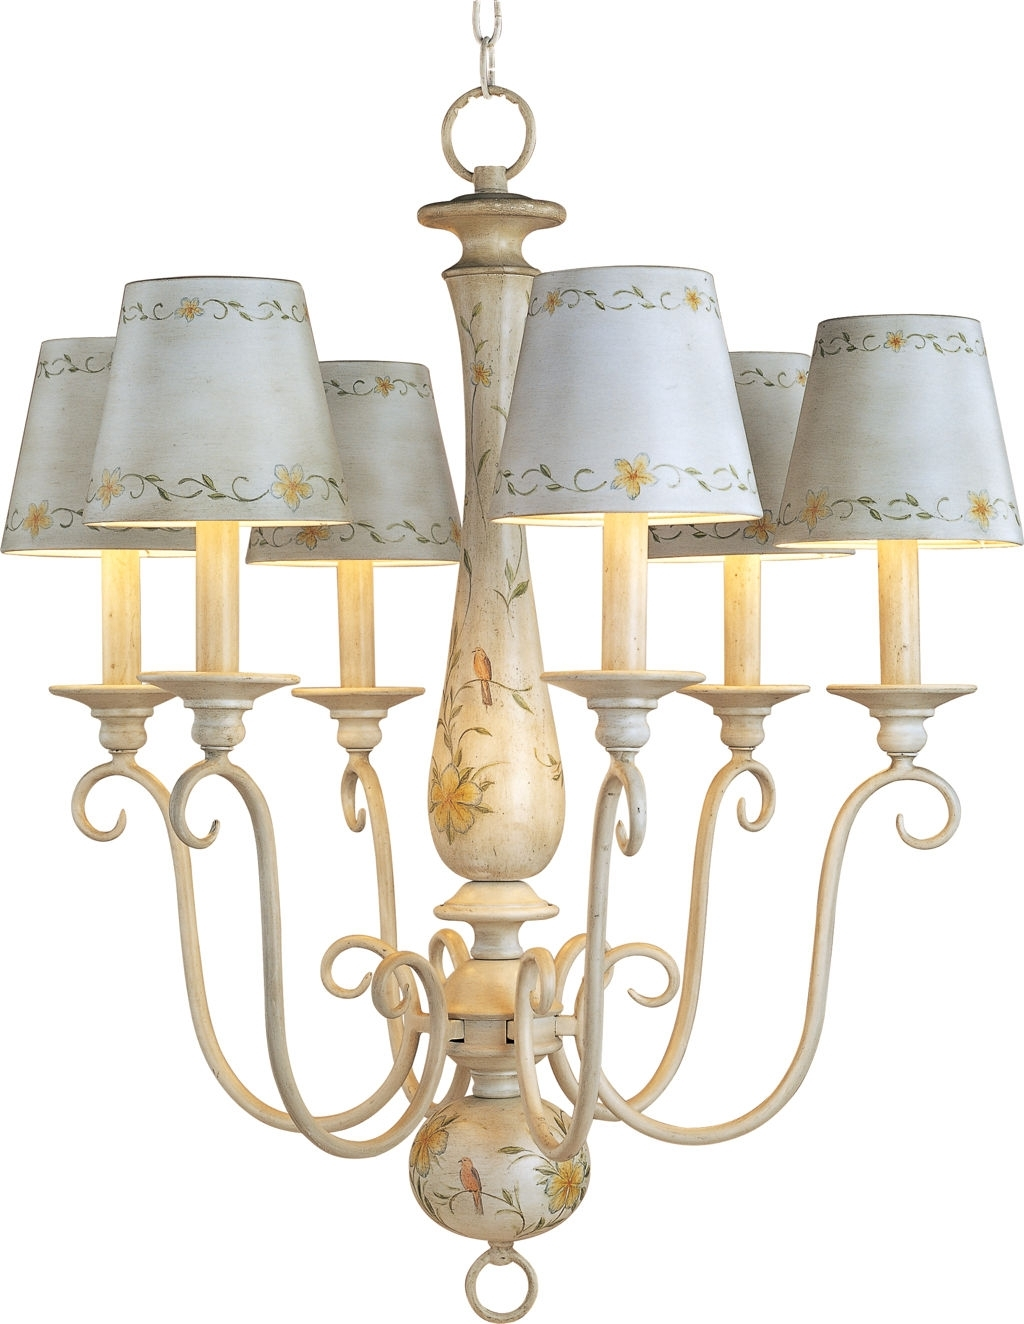 Widely Used Chandelier Lamp Shades Clip On For Chandelier Lamp Shades Plus 5 Inch Lamp Shades Plus Small Clip On (View 5 of 20)